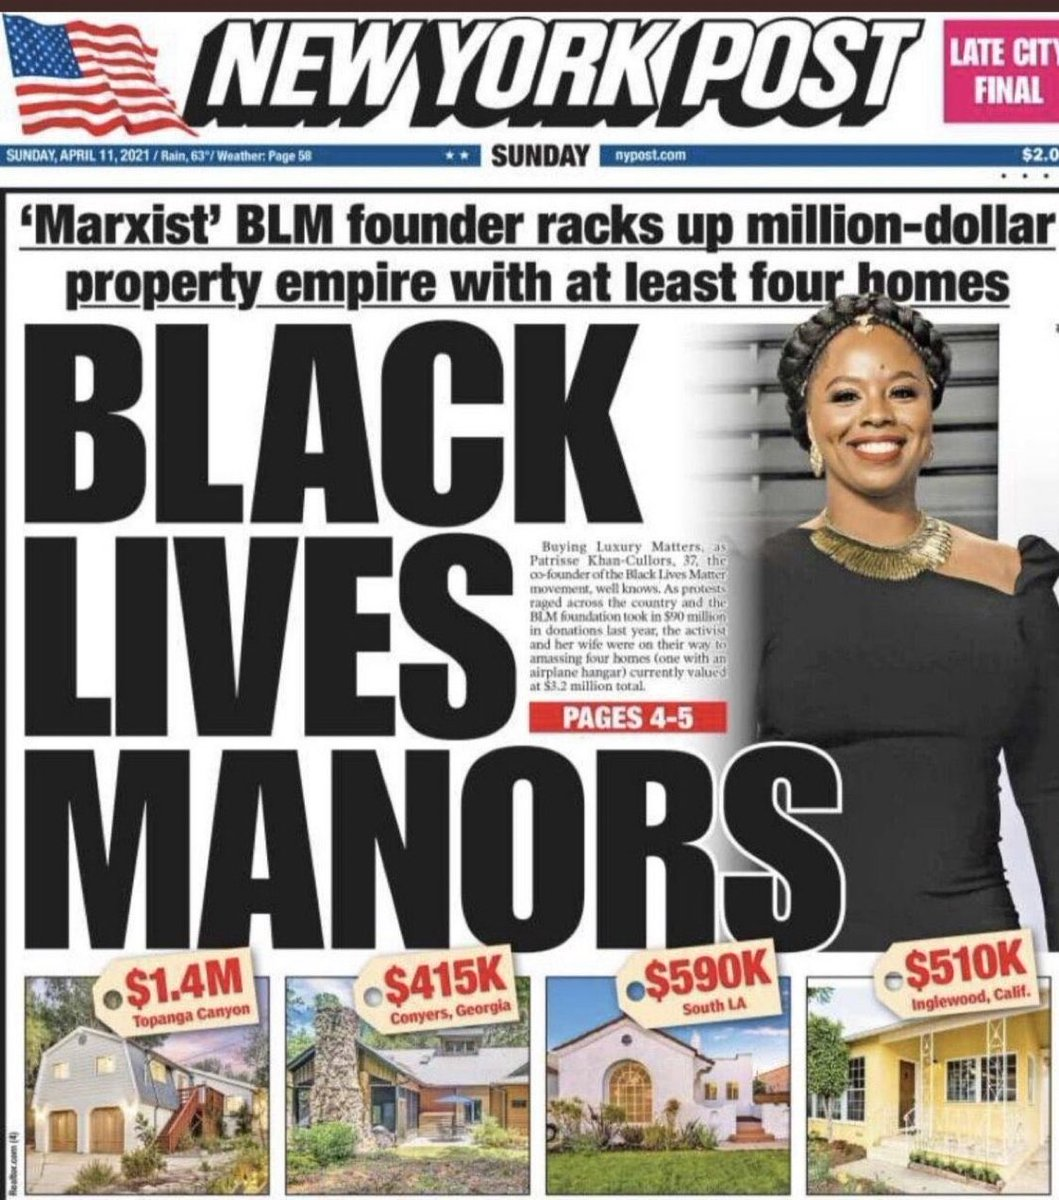 Race has become a very profitable business. The Marxist rhetoric seems to be merely a cover for greed and selfishness @nypost